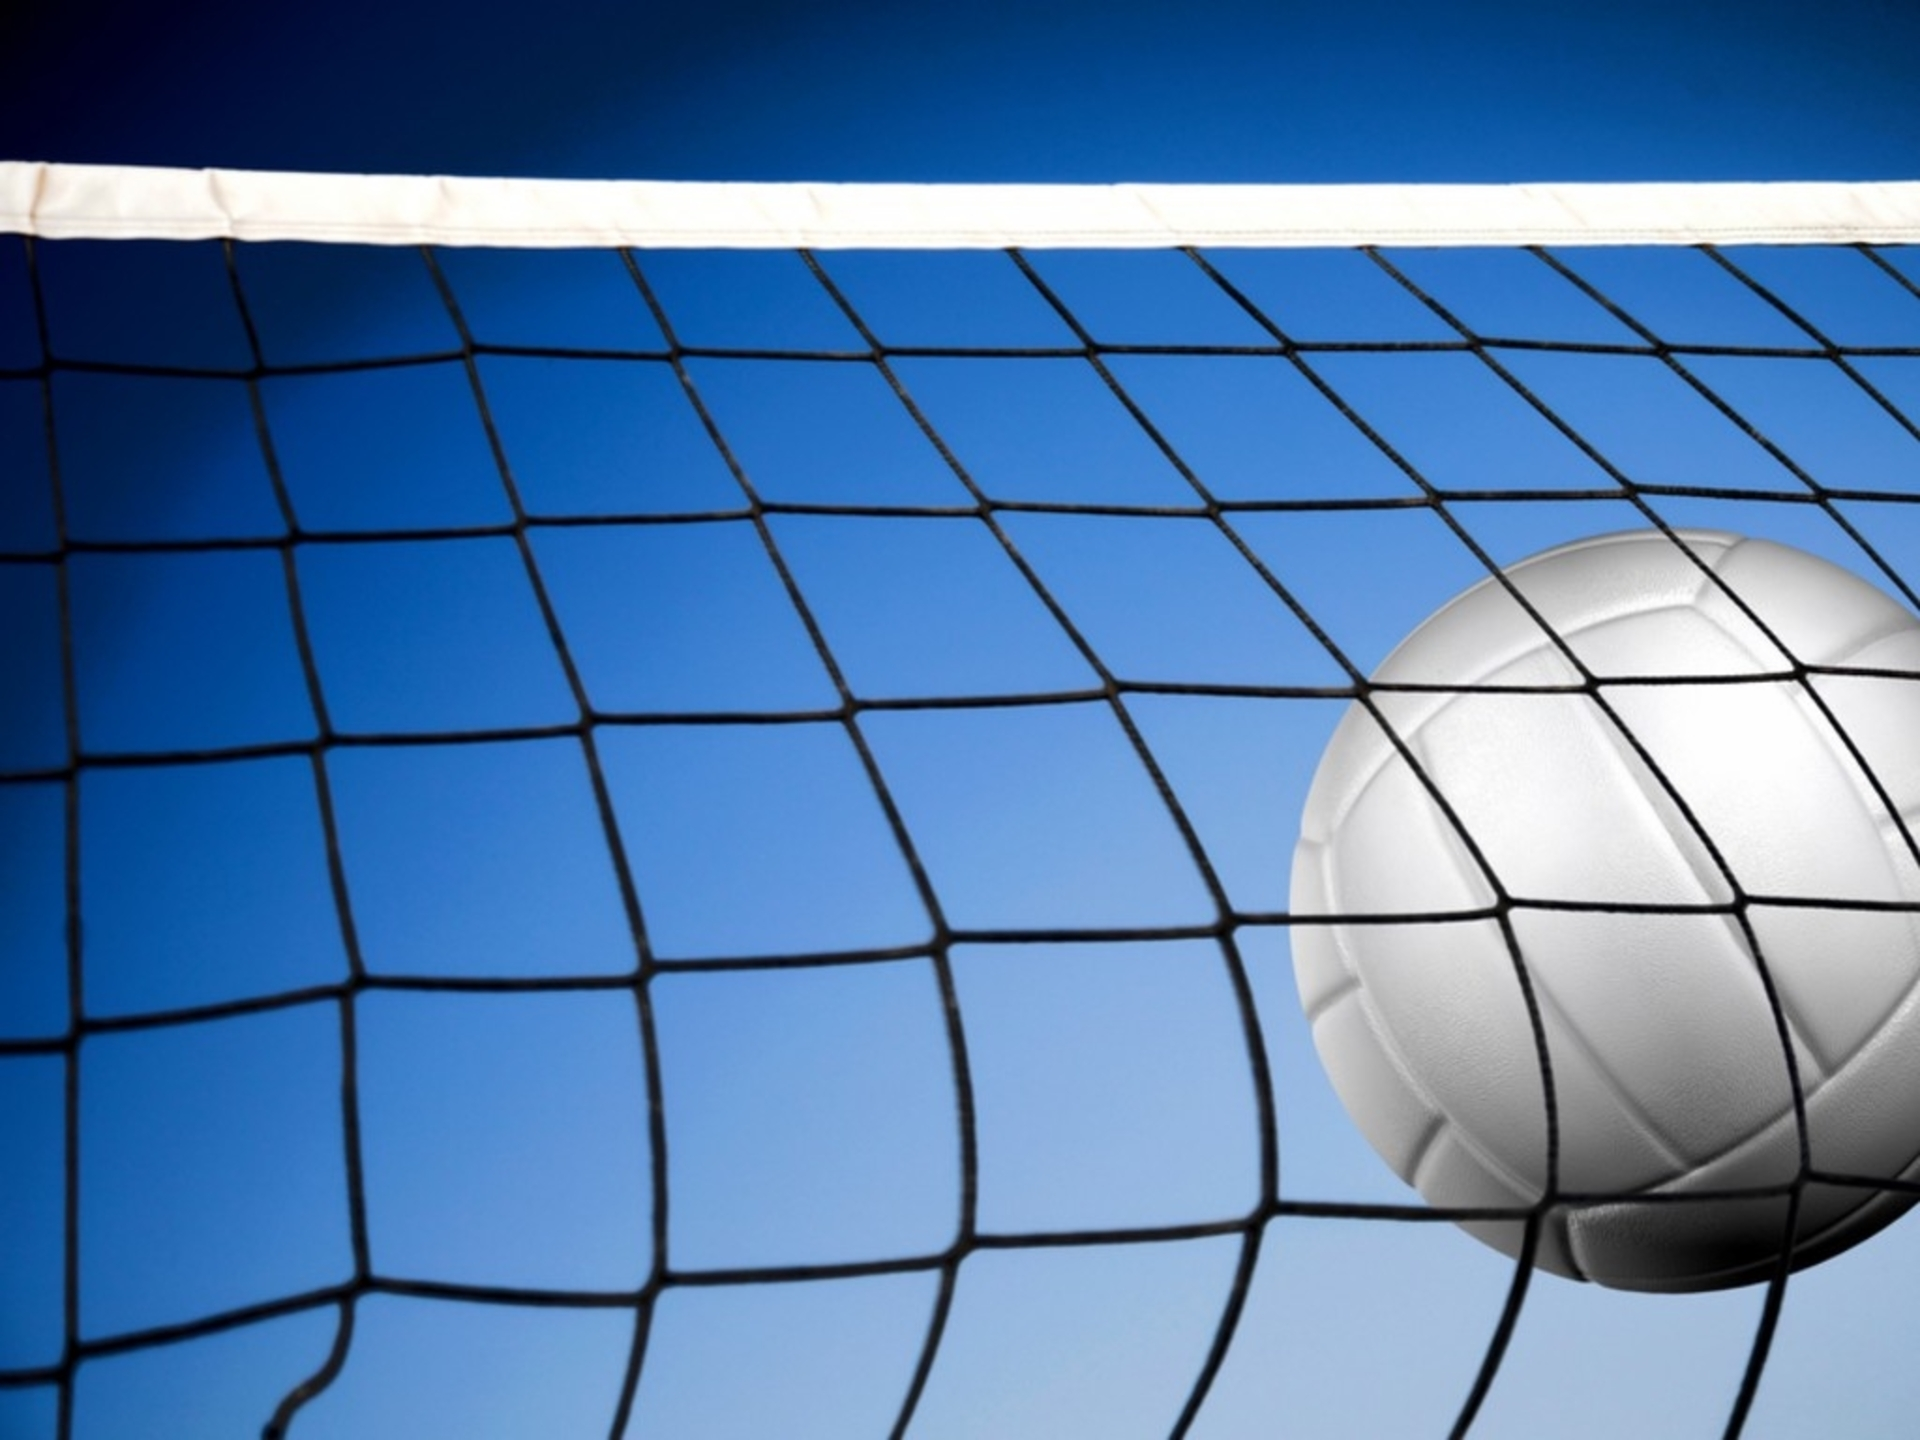 Free volleyball wallpapers and backgrounds wallpapersafari volleyball wallpapers best wallpapers toneelgroepblik Images